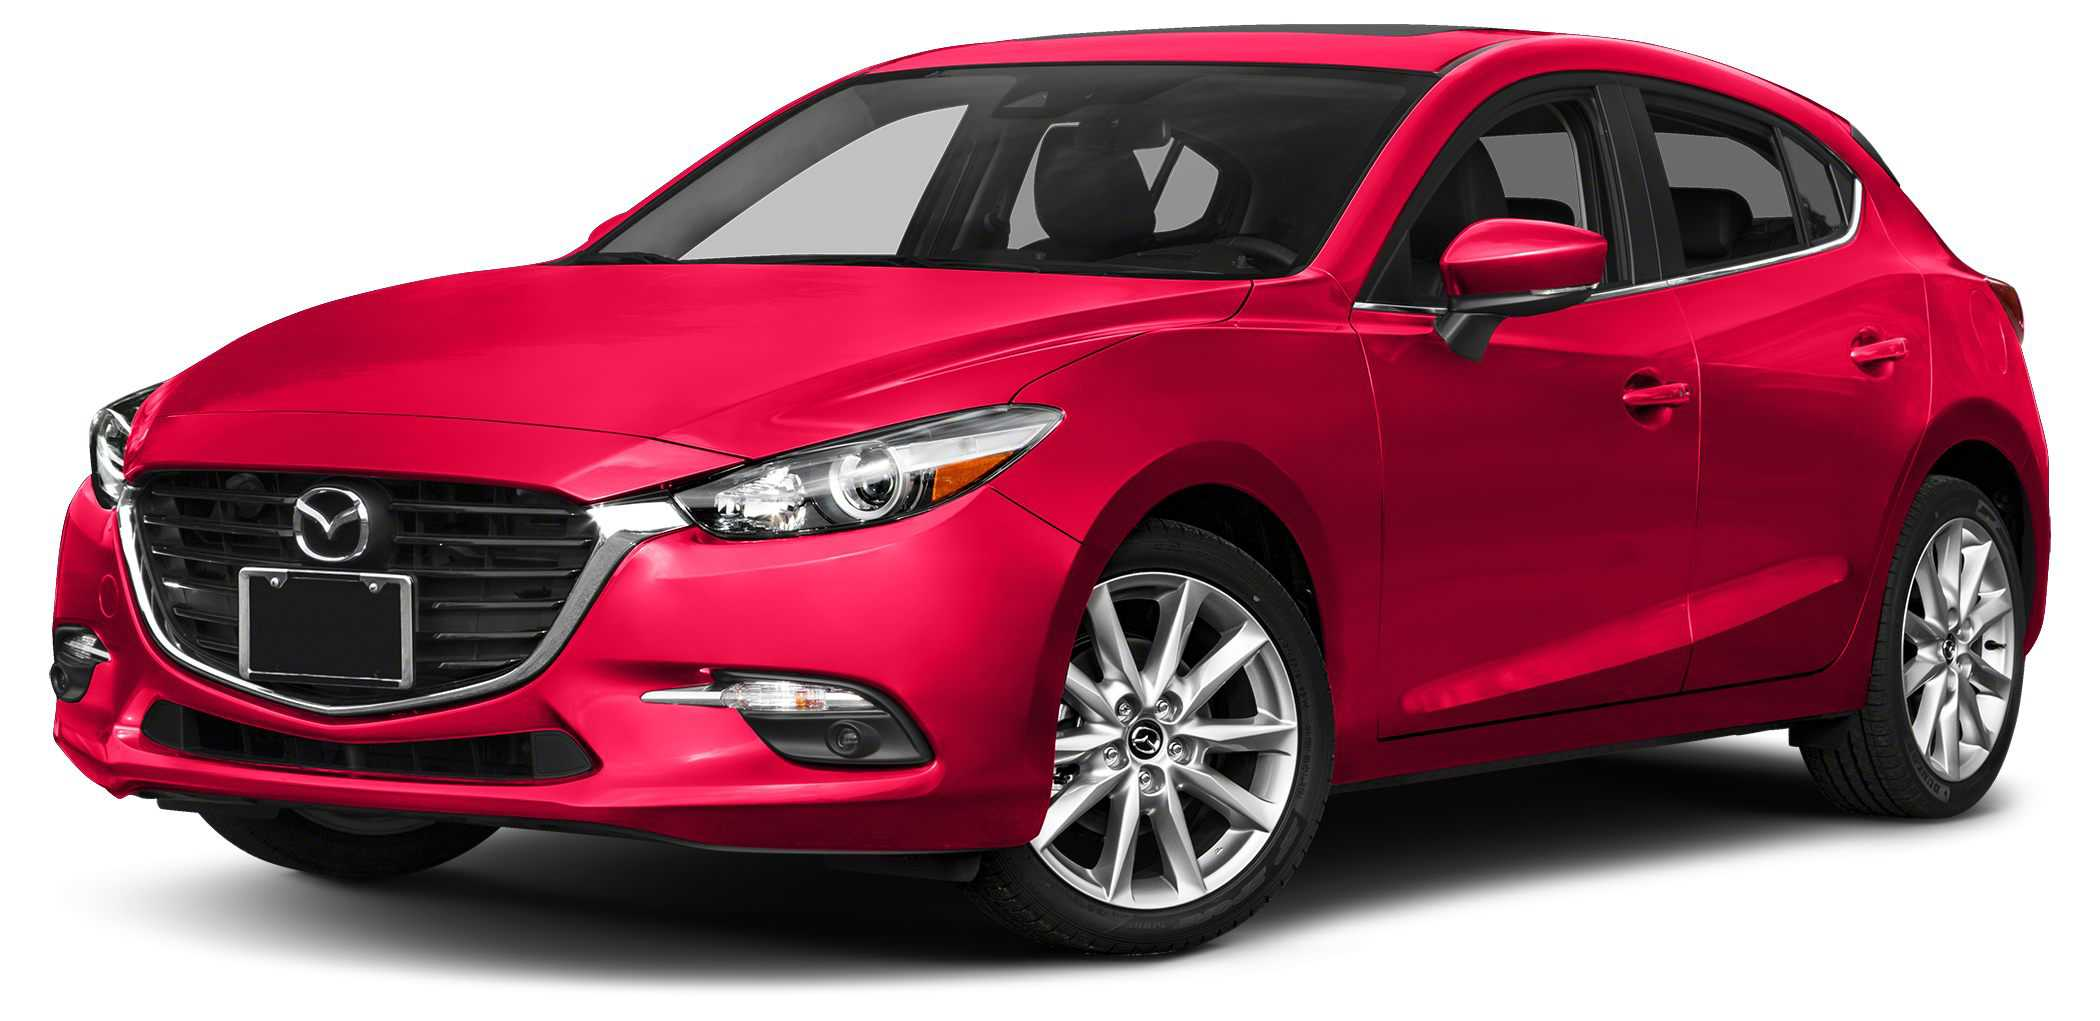 2017 mazda mazda3 for sale in newark ca 3mzbn1m32hm145261. Black Bedroom Furniture Sets. Home Design Ideas